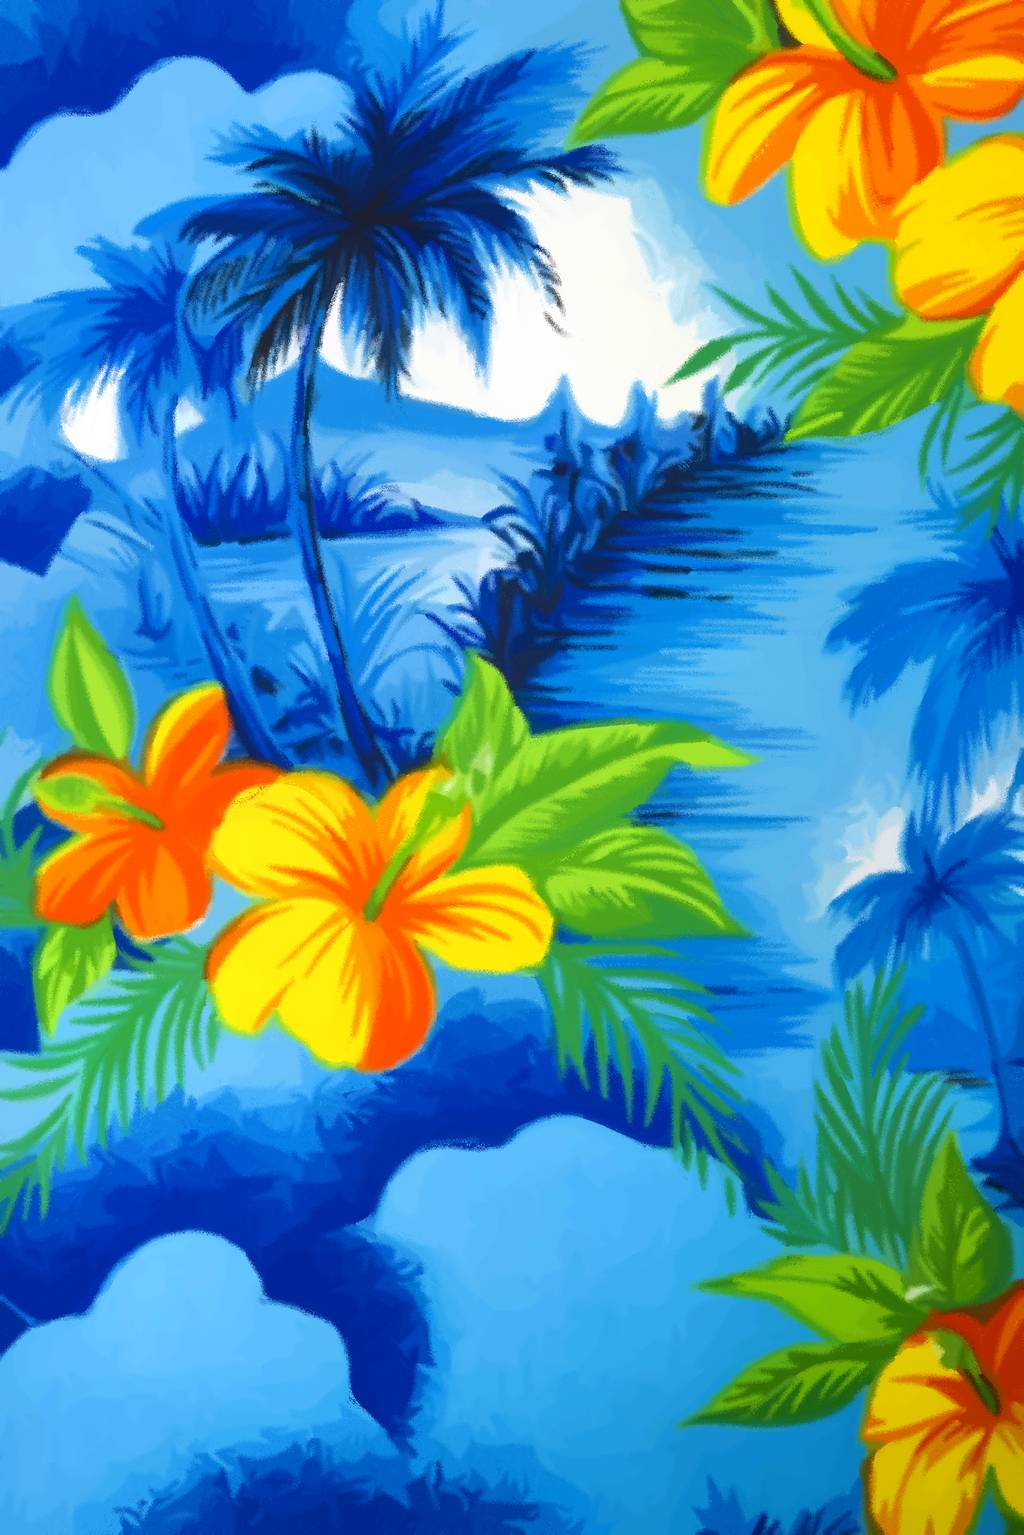 Images For > Hawaiian Shirt Pattern Wallpaper